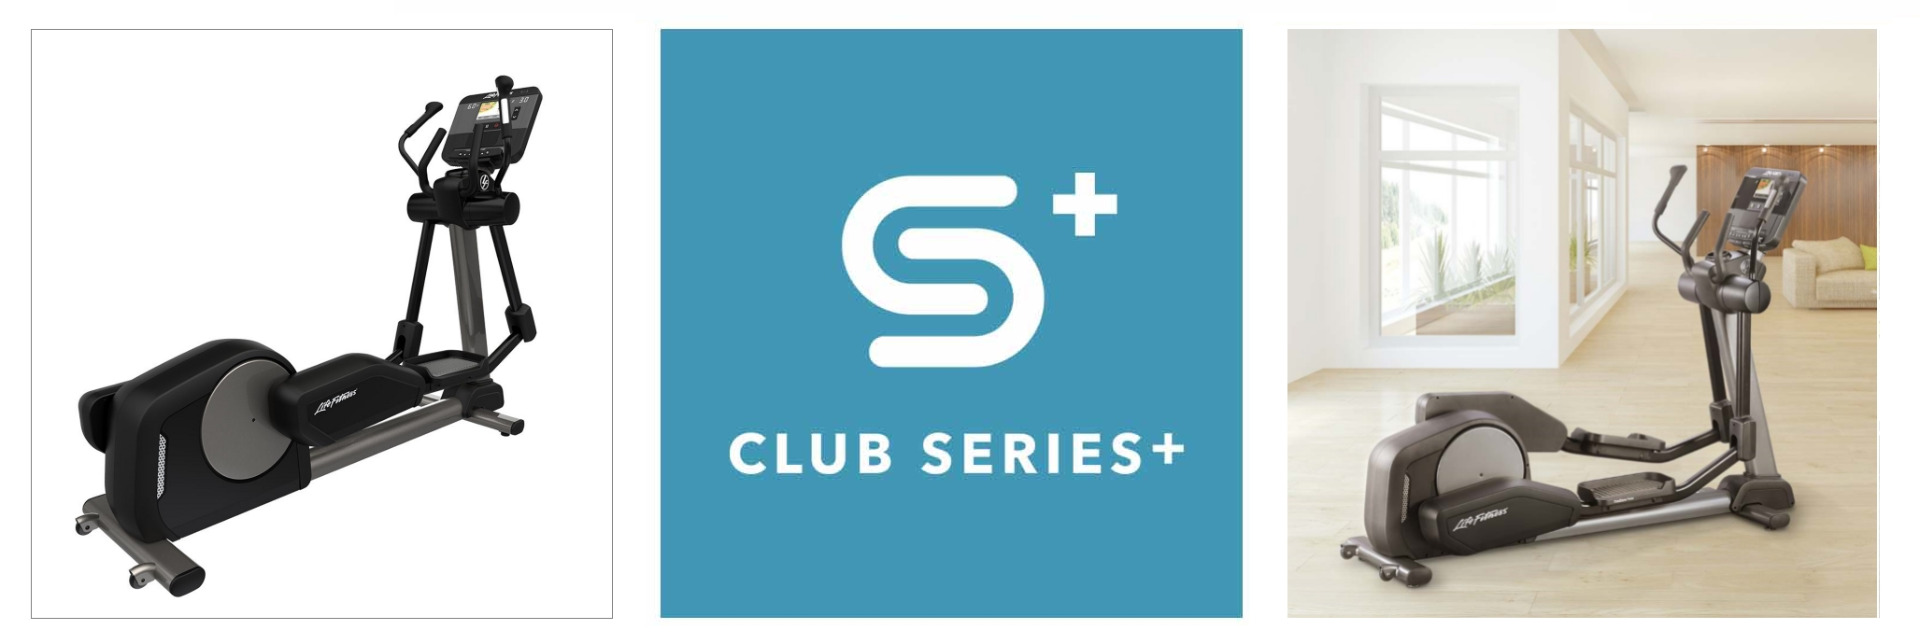 club series plus cross trainer